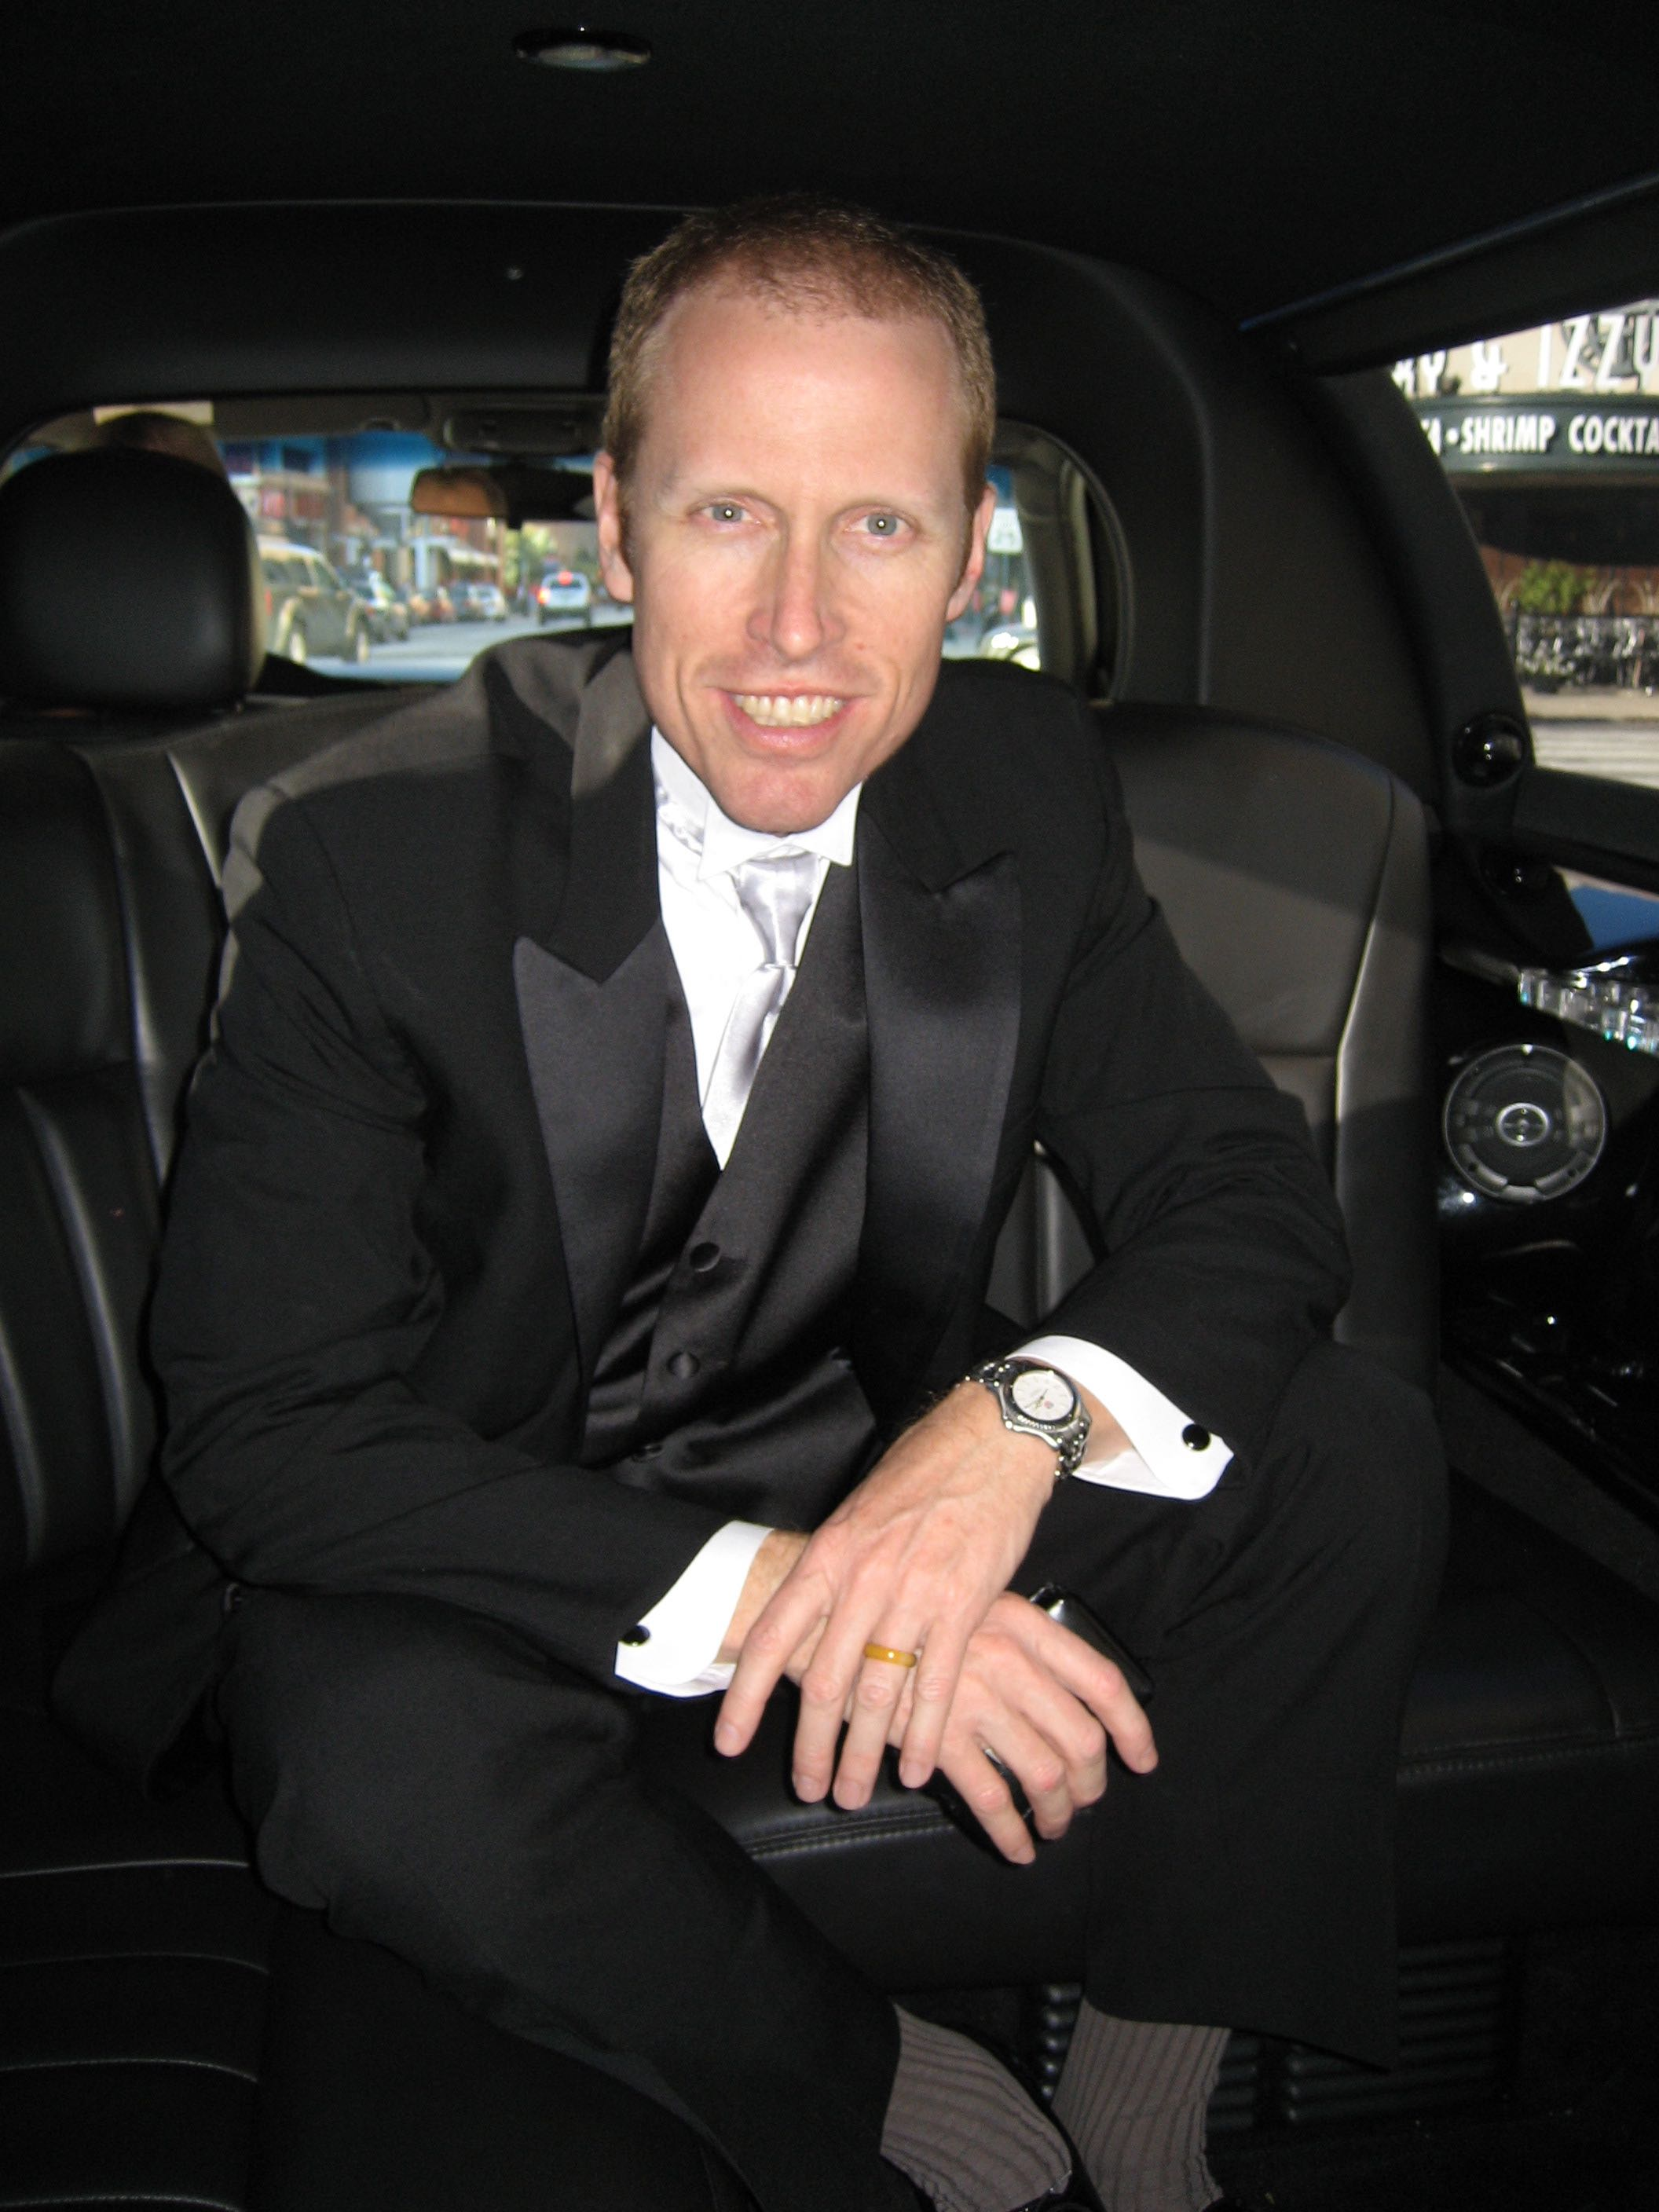 Jim Praytor (producer) on his way to attend the Crystal Heart Awards Gala event at the Heartland Film Festival